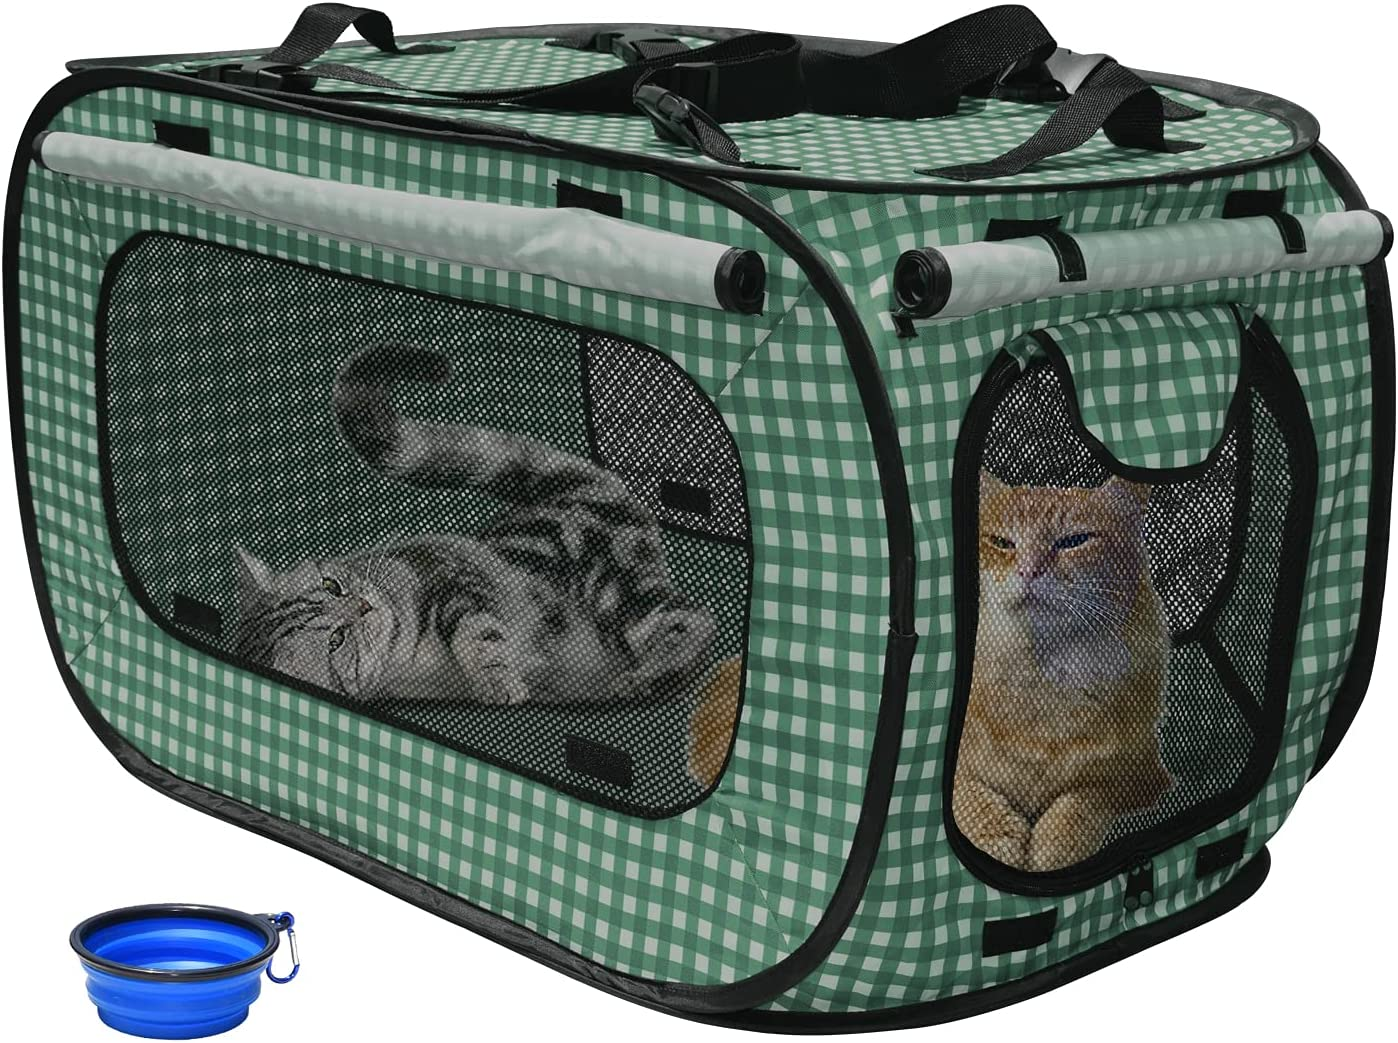 Rolscaler Portable Limited time sale Cat Cage Kennels Ranking integrated 1st place Travel for Por Outdoor Cats